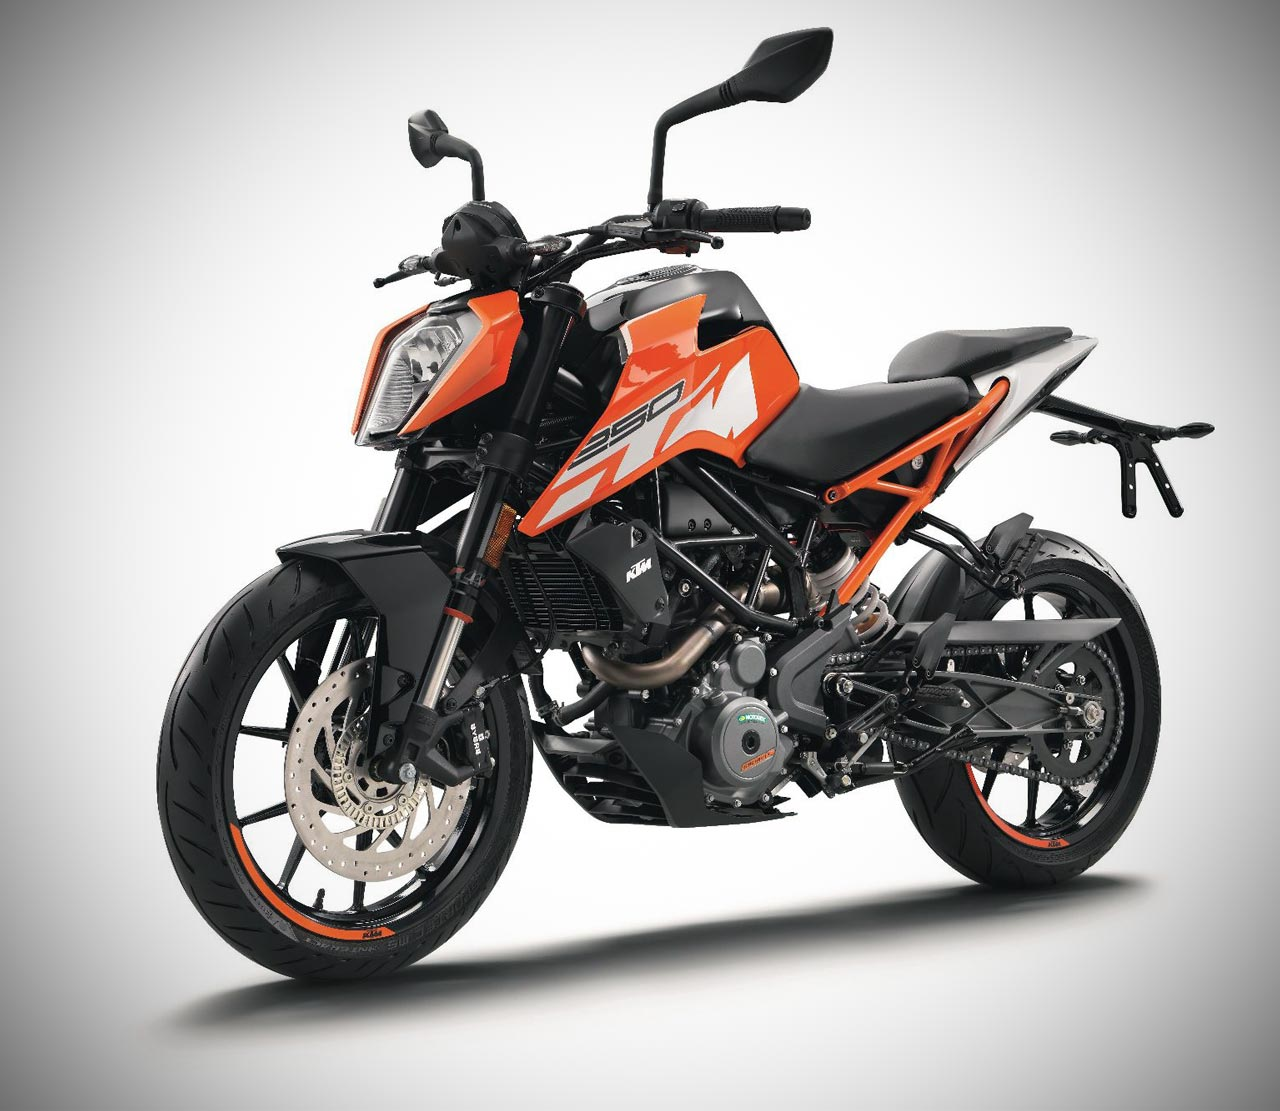 2017 ktm duke 250 launched in india at inr lakhs autobics. Black Bedroom Furniture Sets. Home Design Ideas